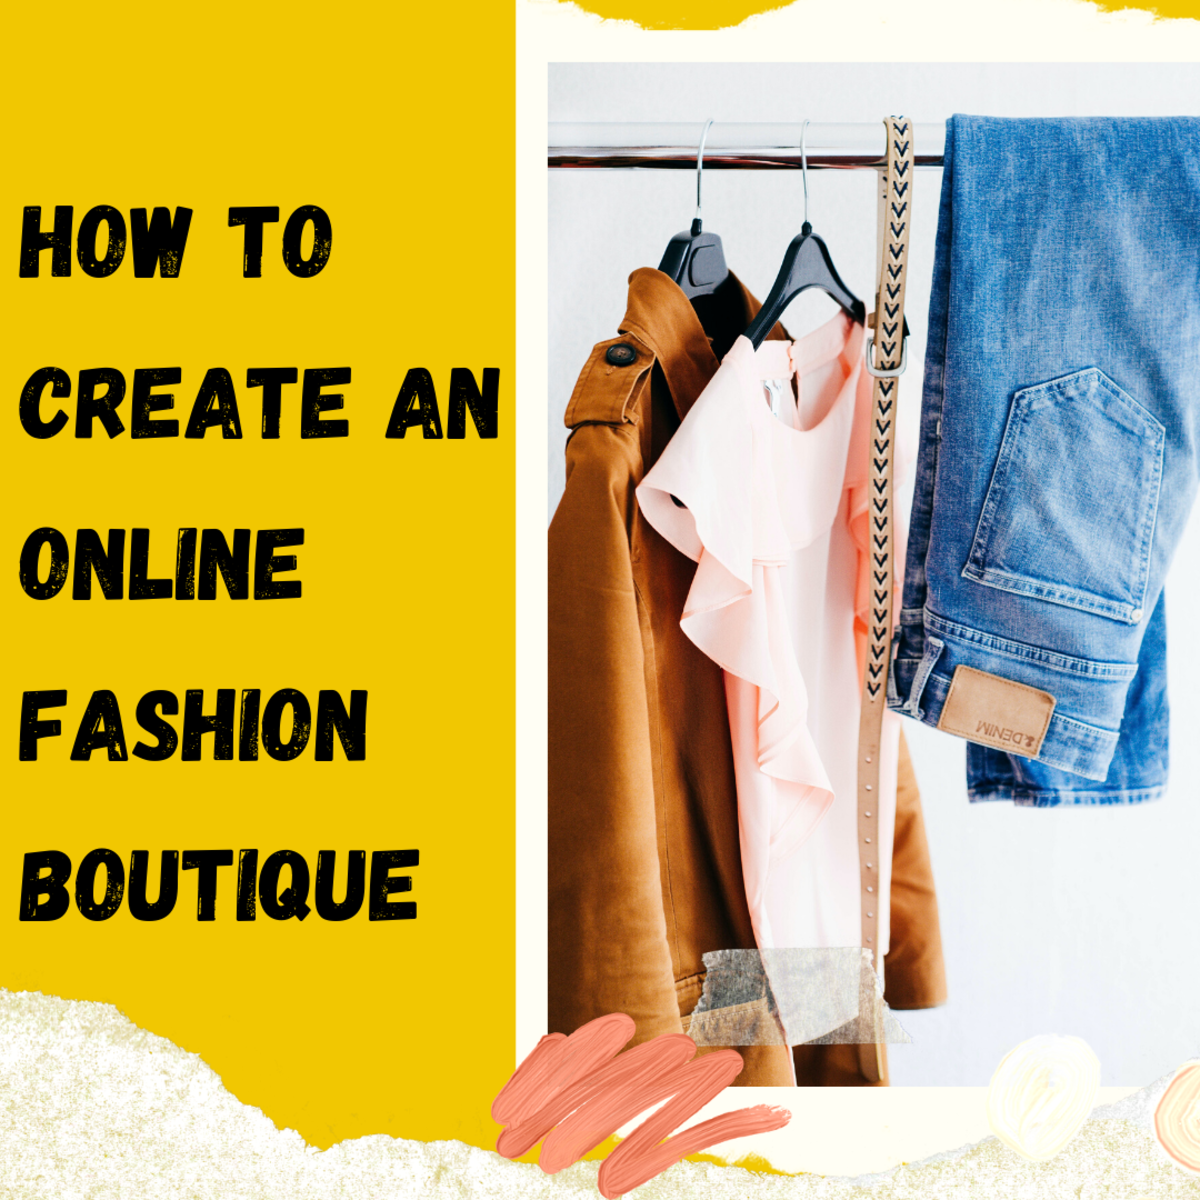 Starting a fashion boutique can be easier than you think. Just follow the easy steps listed below.